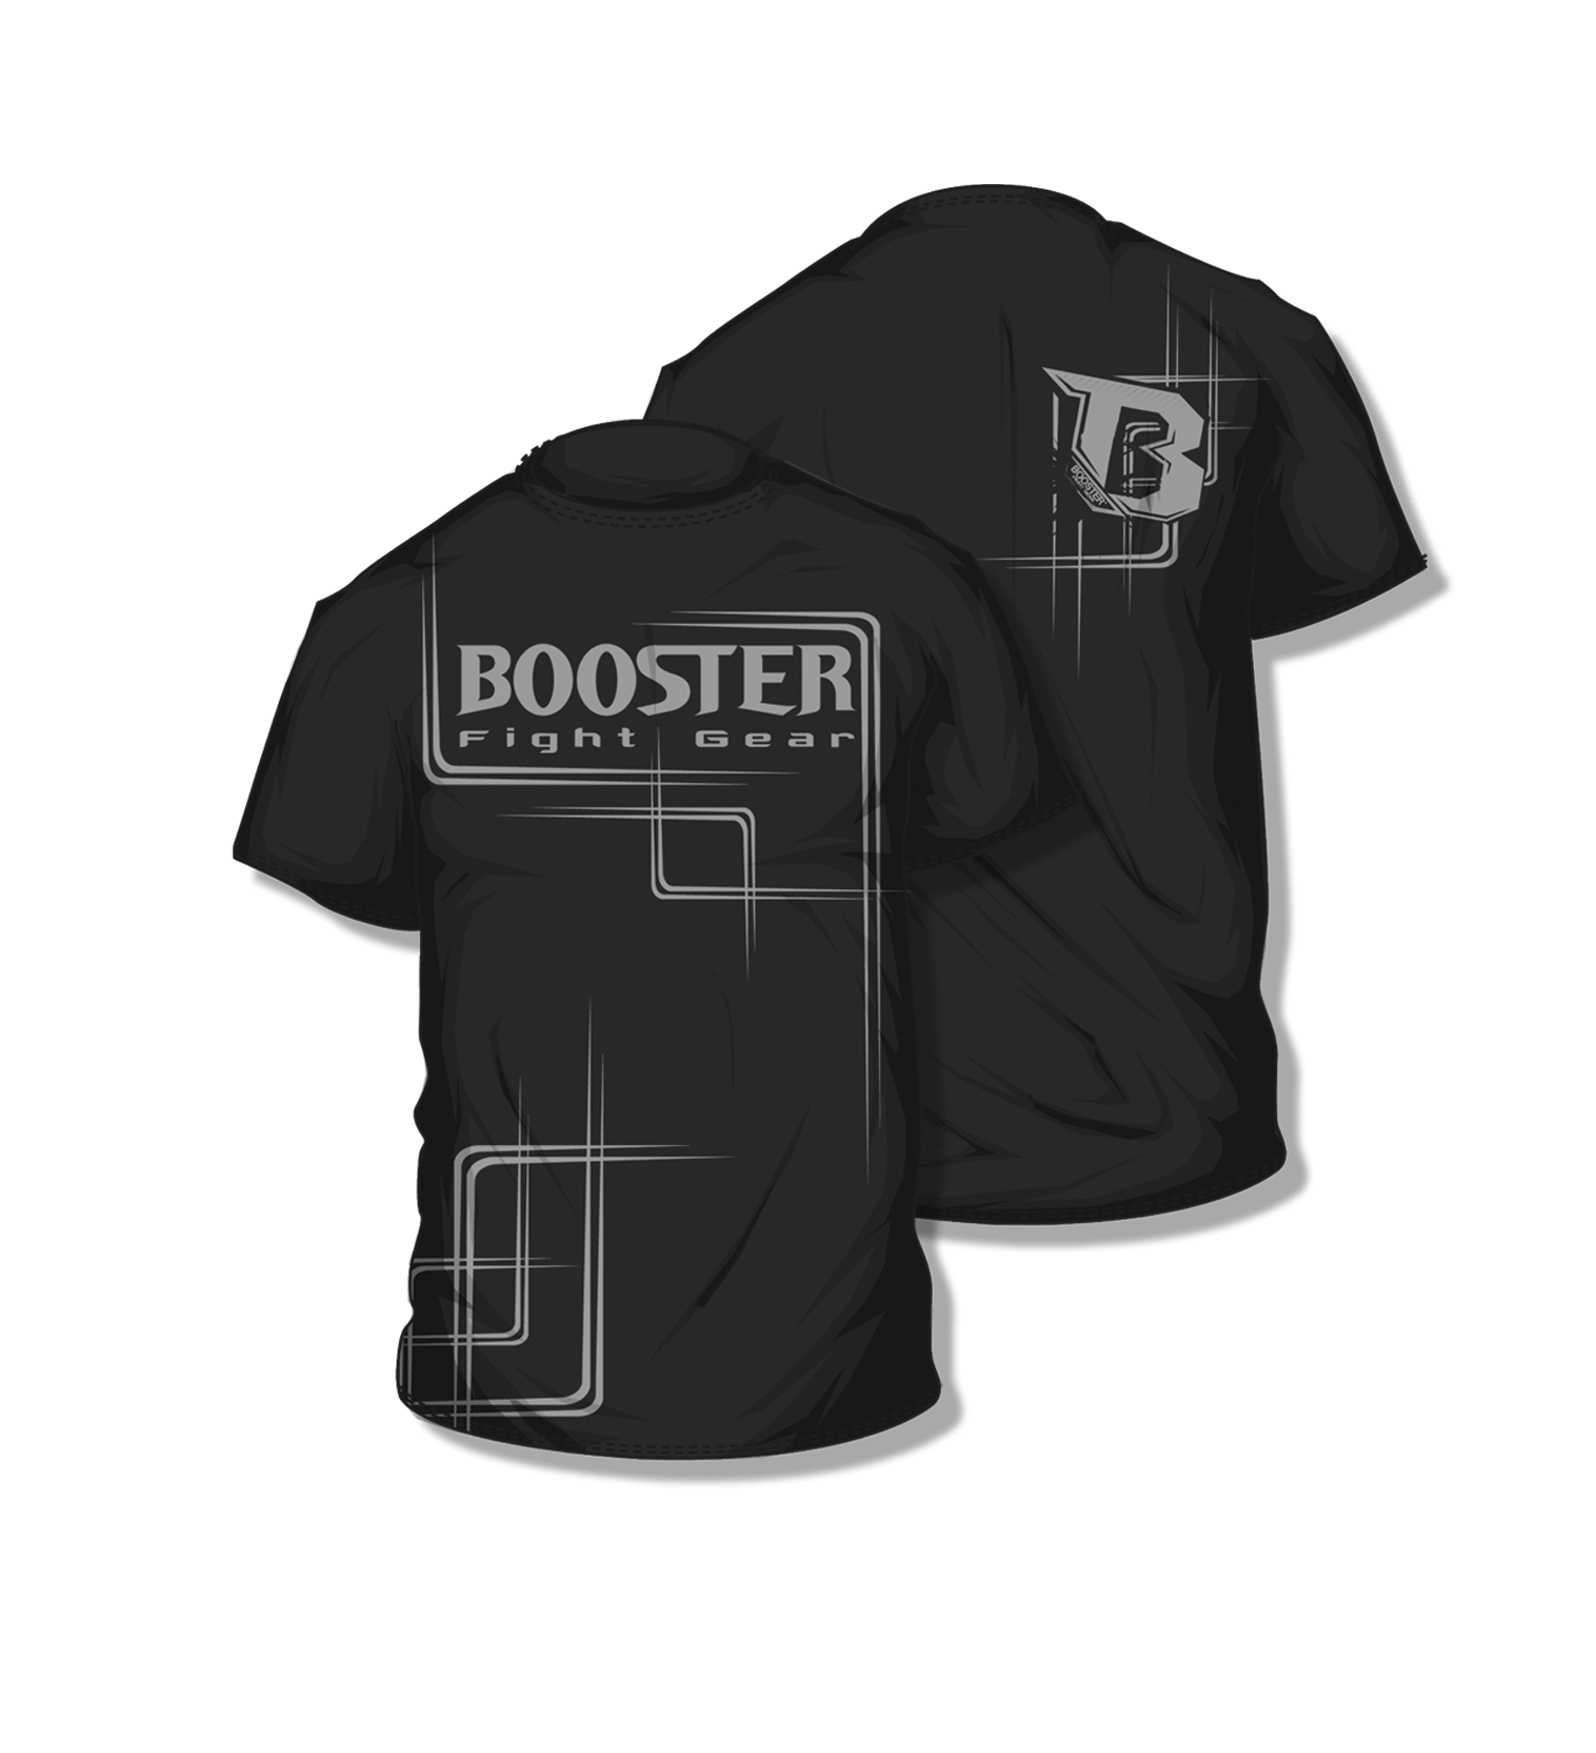 Booster  BC Walk out shirt black - M